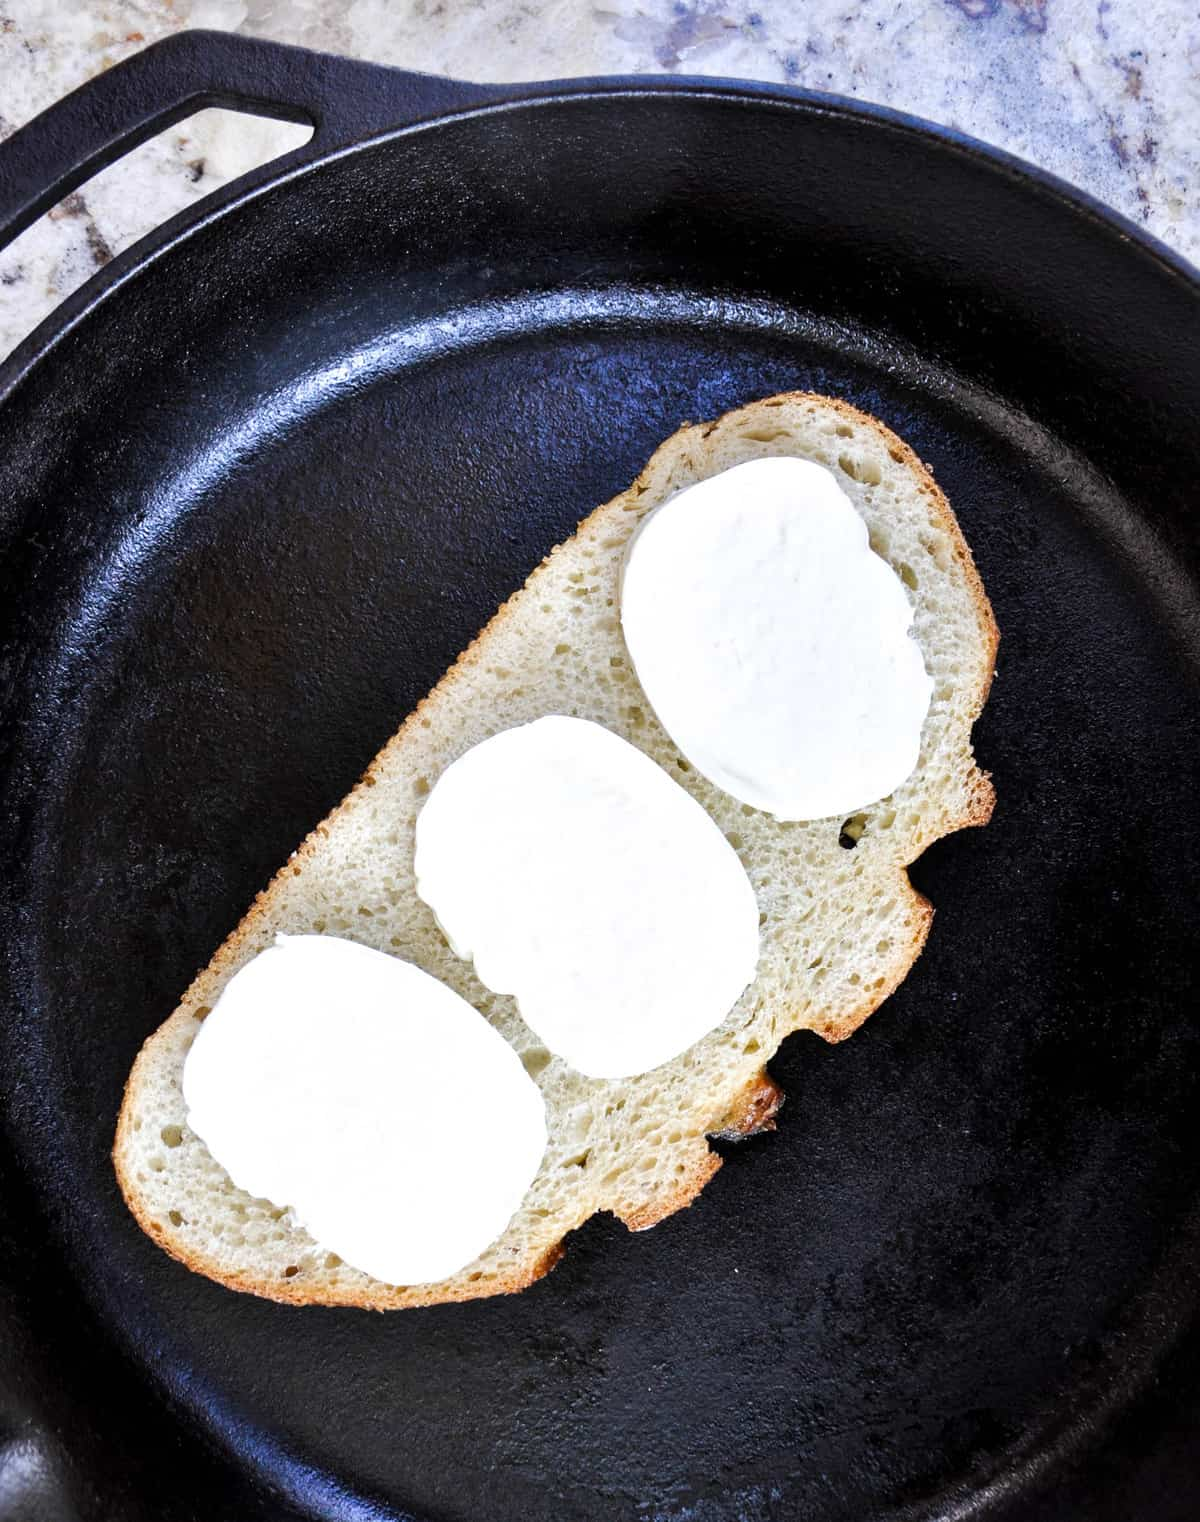 Sourdough bread with mozzarella cheese in skillet